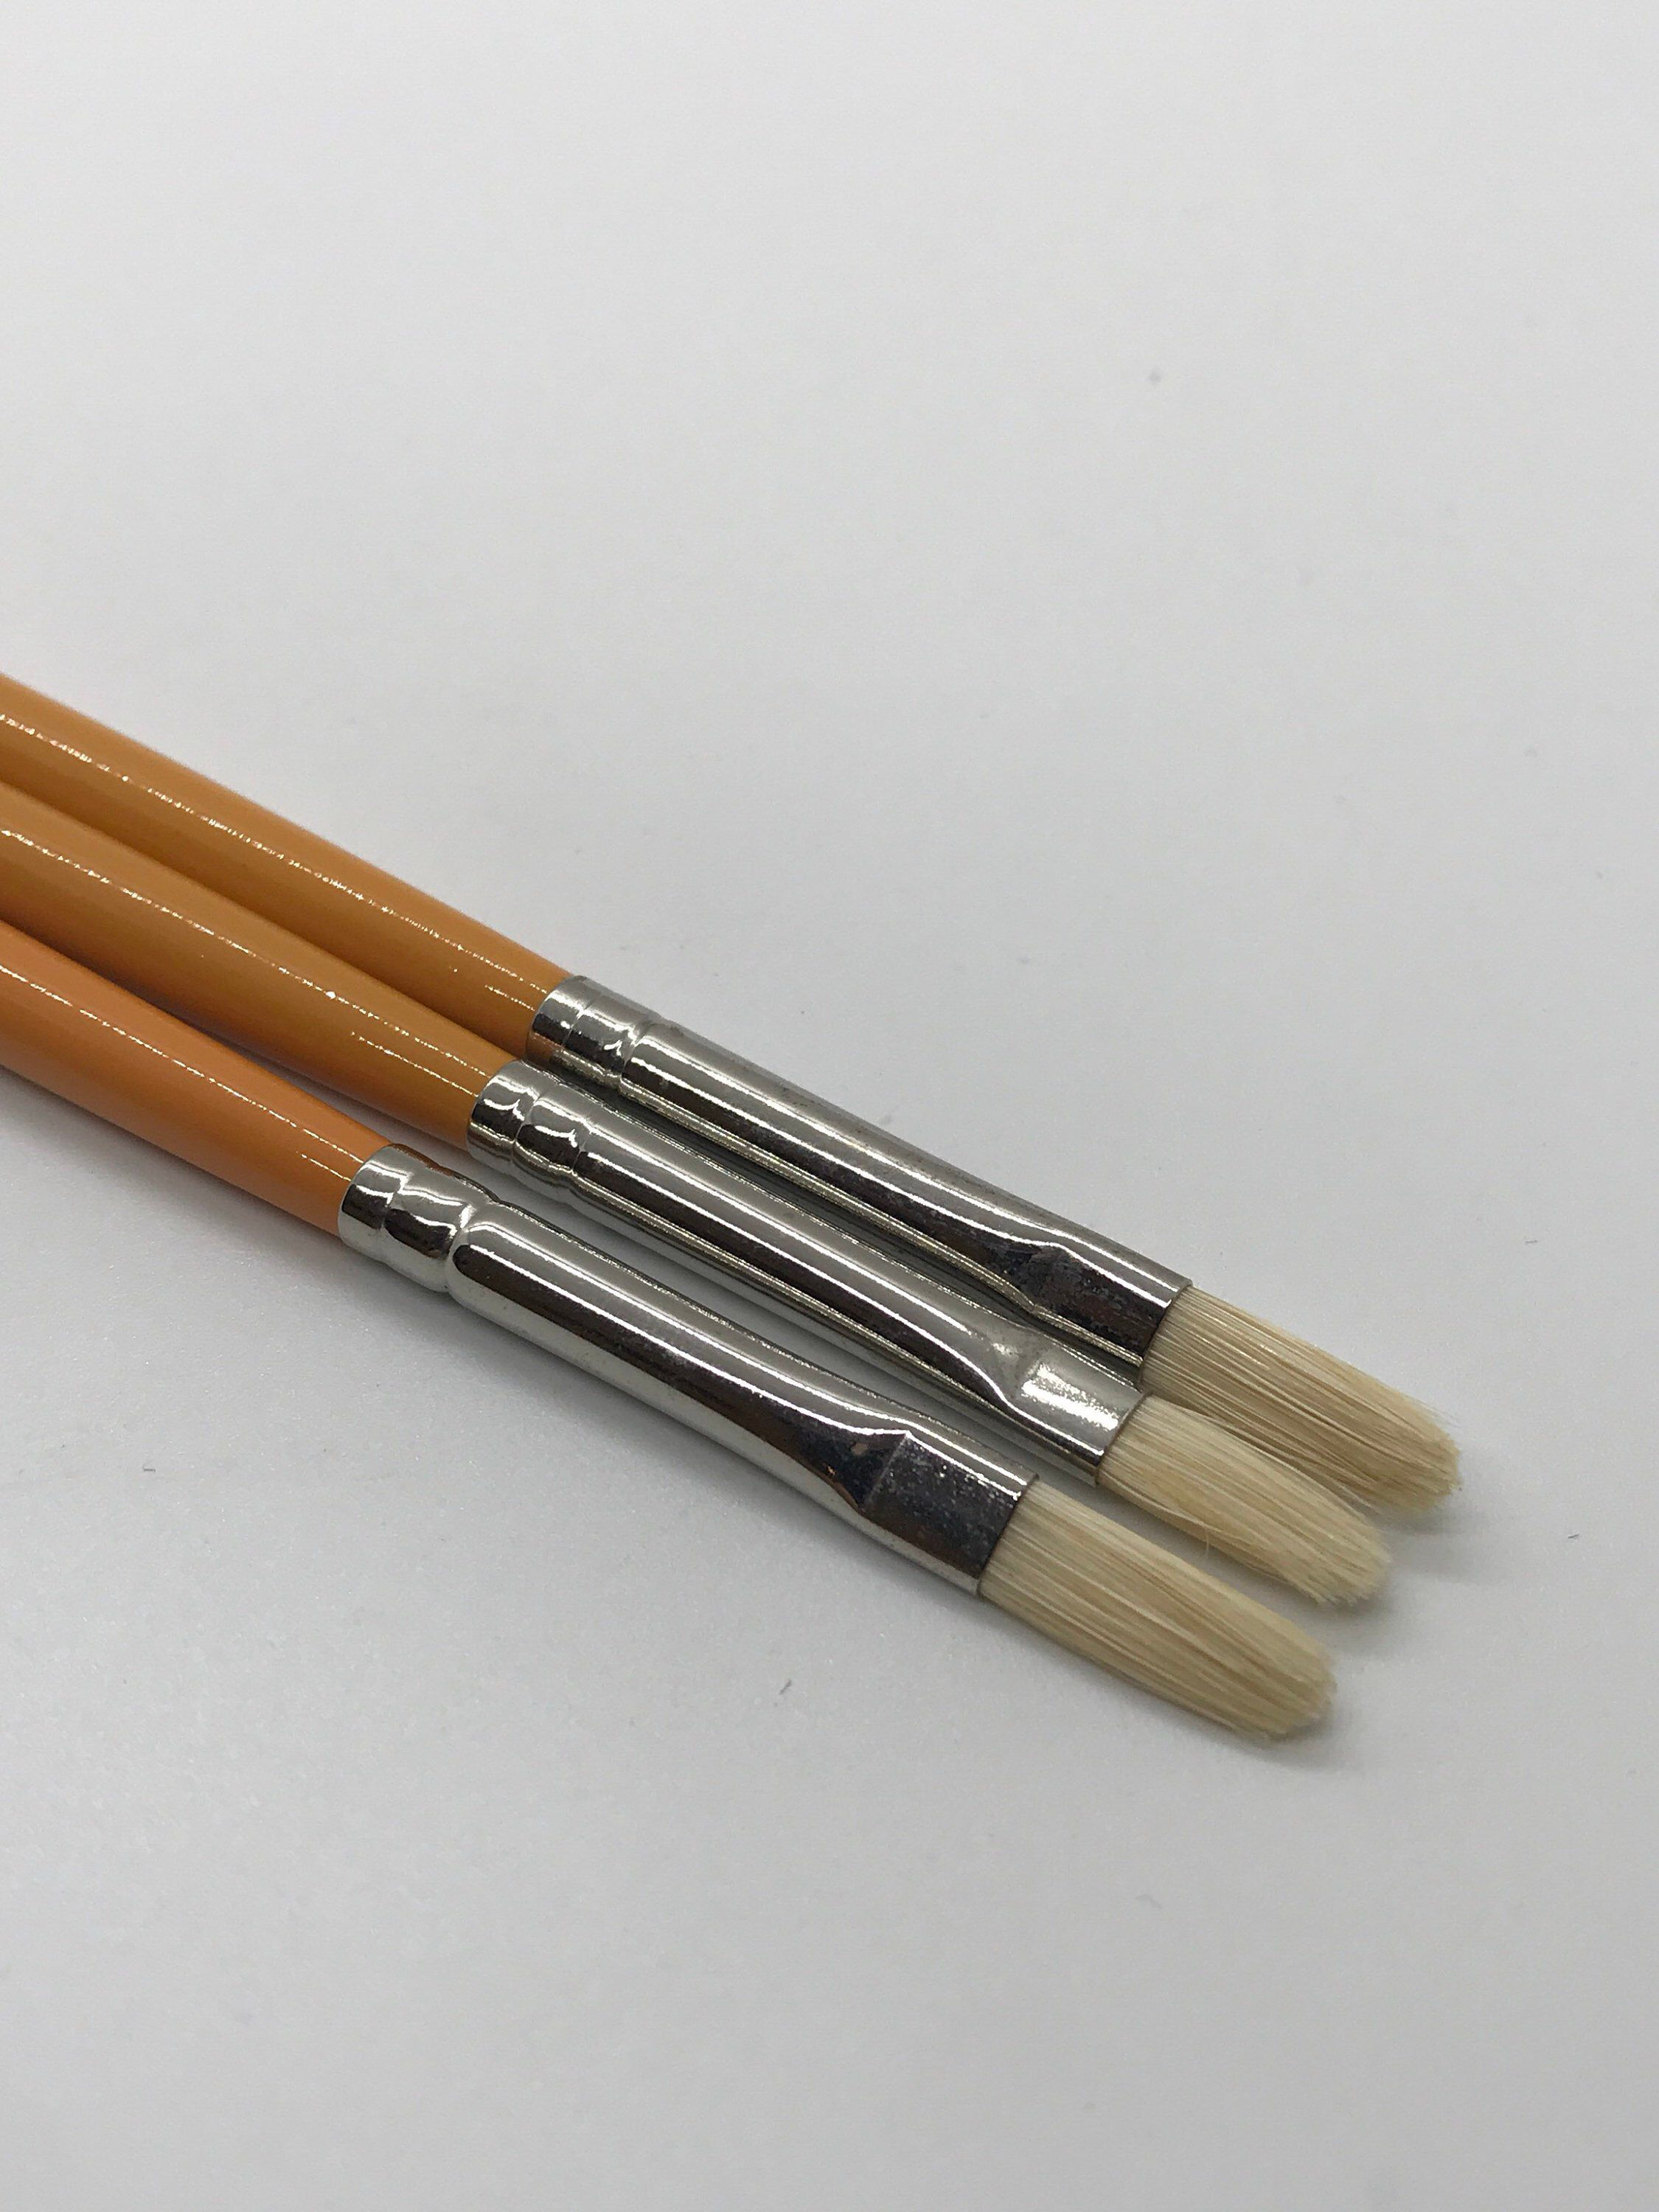 2 1 LOT OF 4 WINSOR /& NEWTON RED HANDLE WATERCOLOR BRUSHES ROUND #0 3